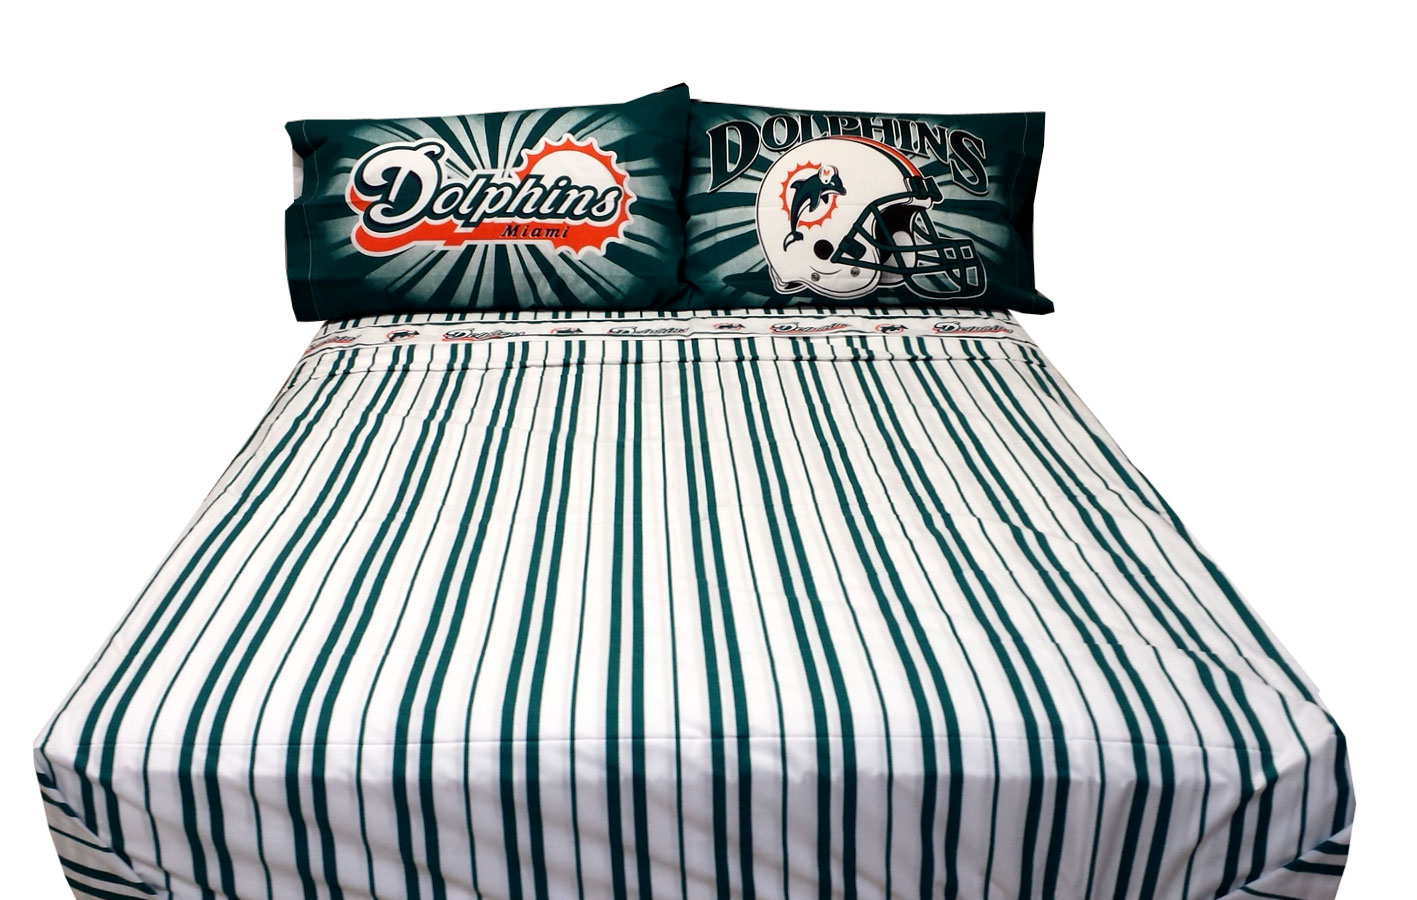 NFL Football Miami Dolphins Bed Sheet Set - 4pc Bedding Sheets Set ...